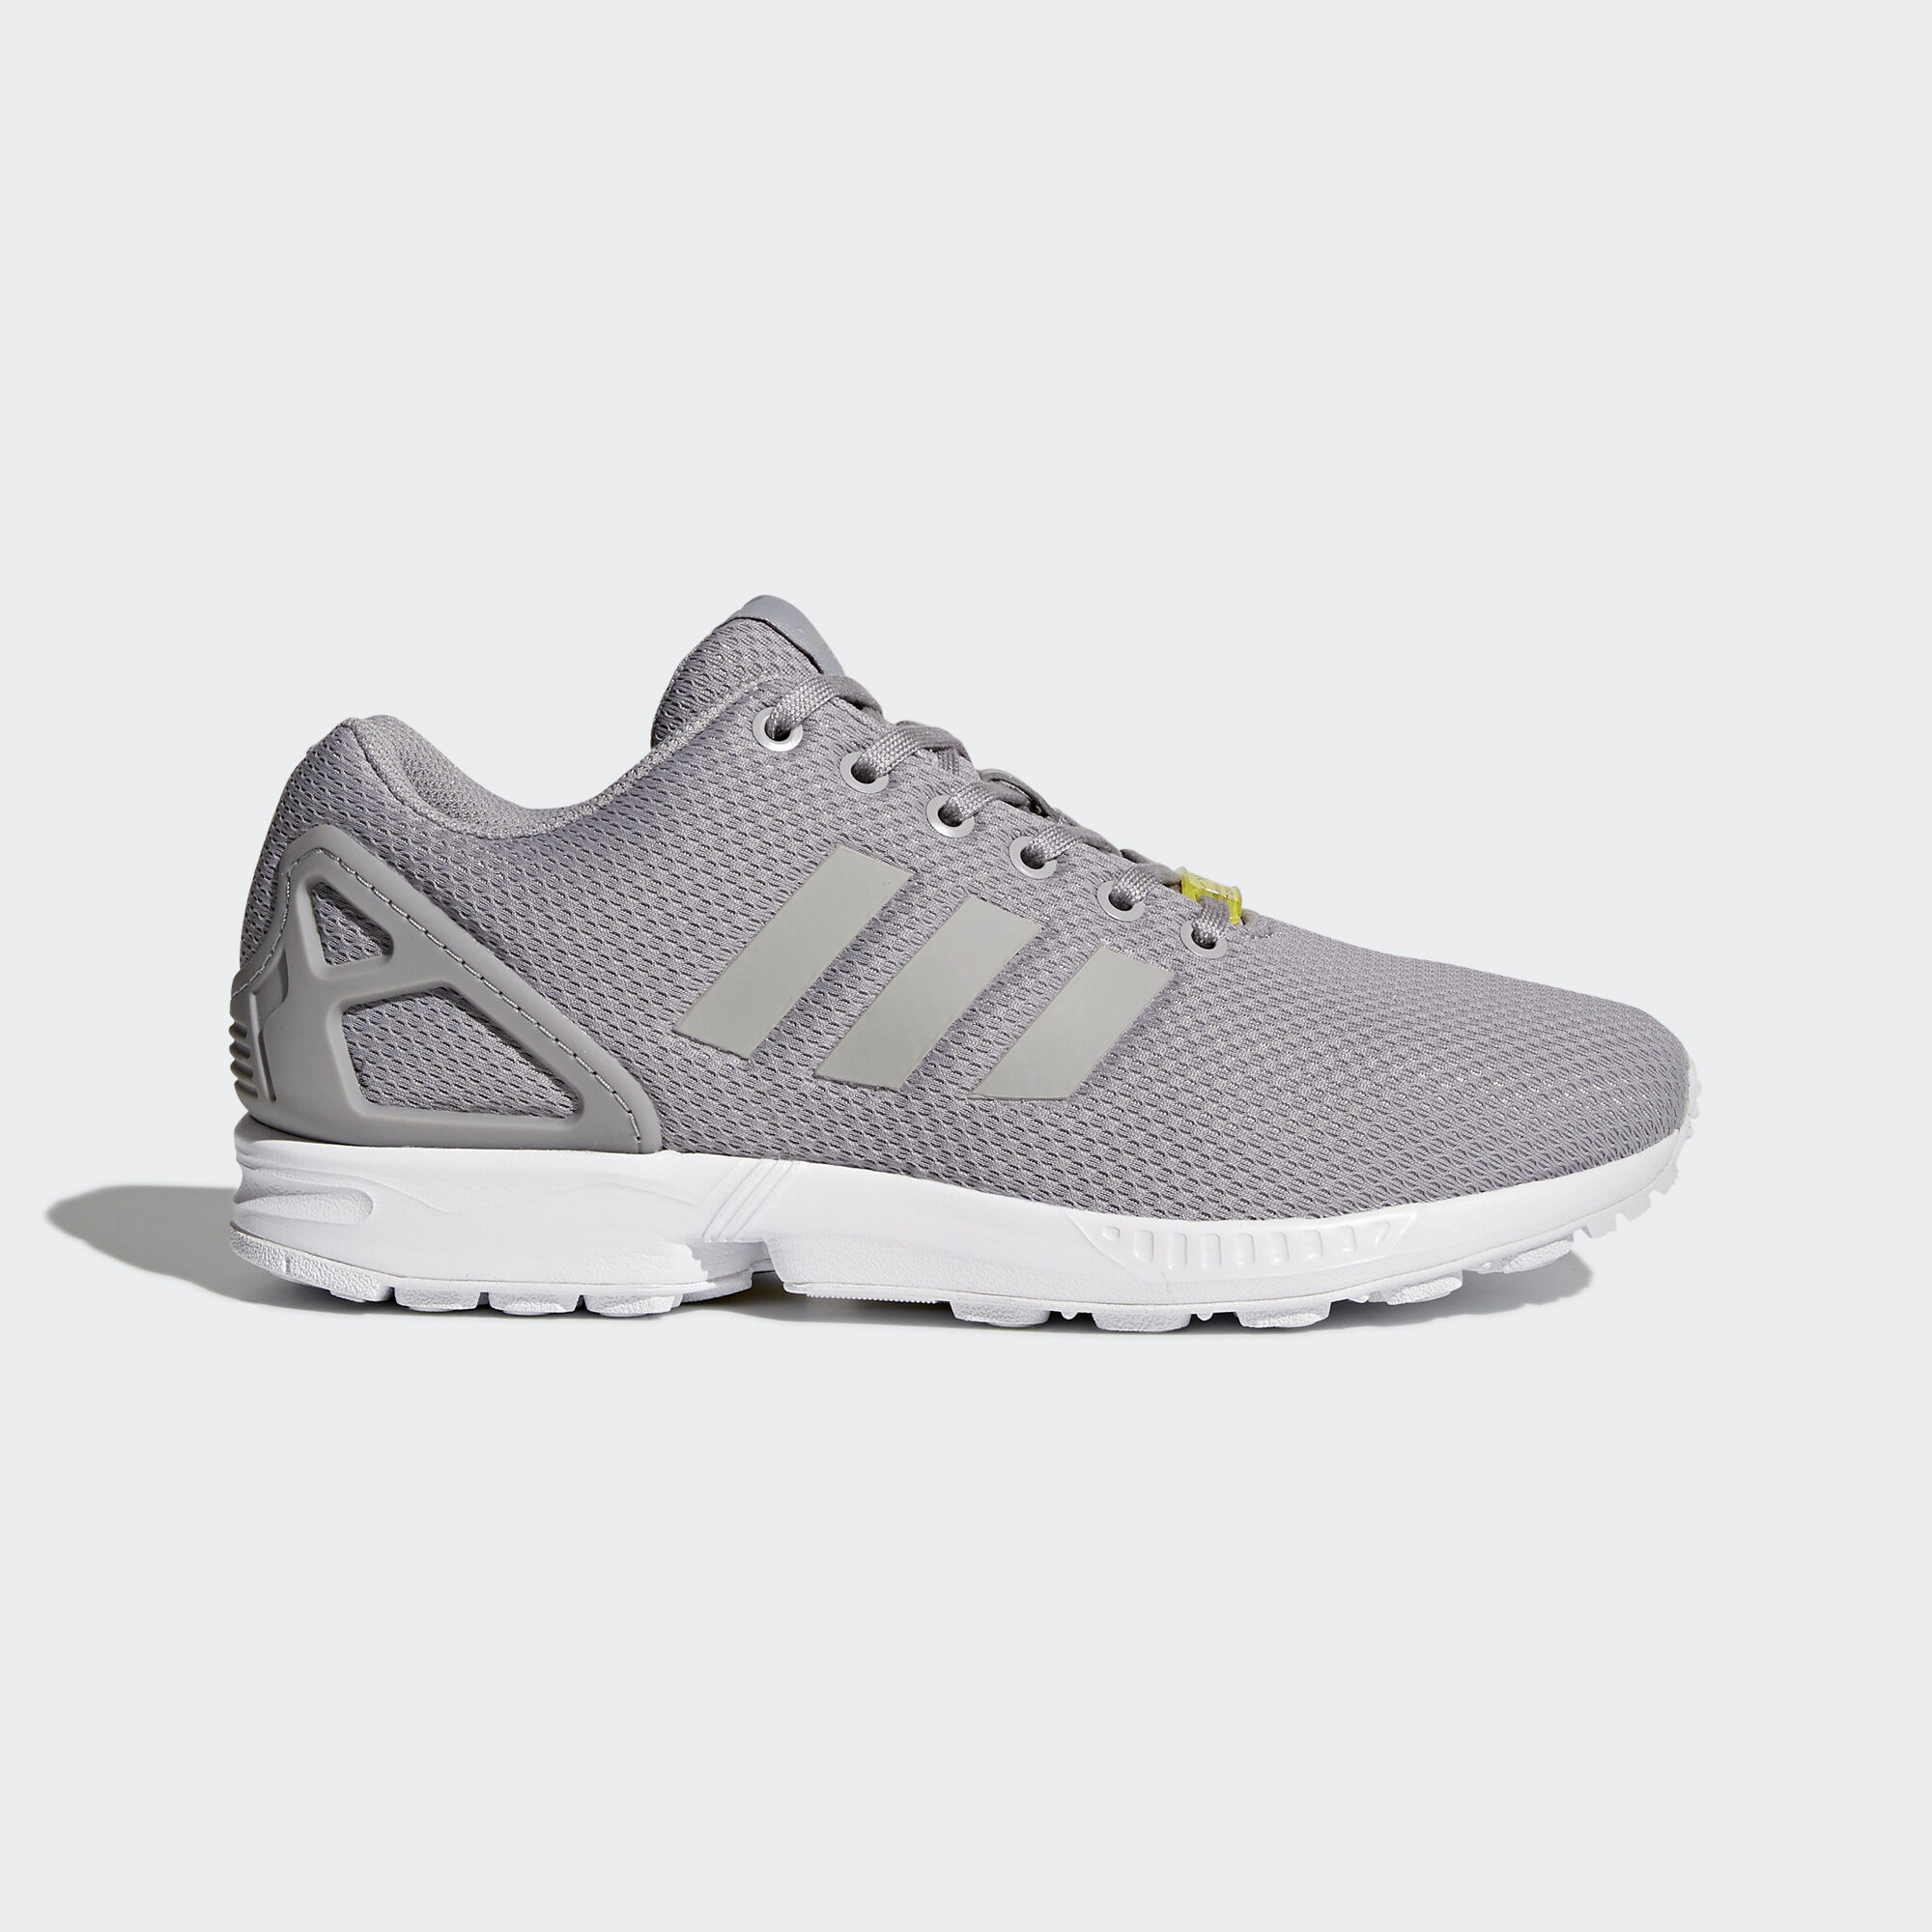 a23dbf704ffd Buy cheap adidas z flux  Up to OFF52% Discounts